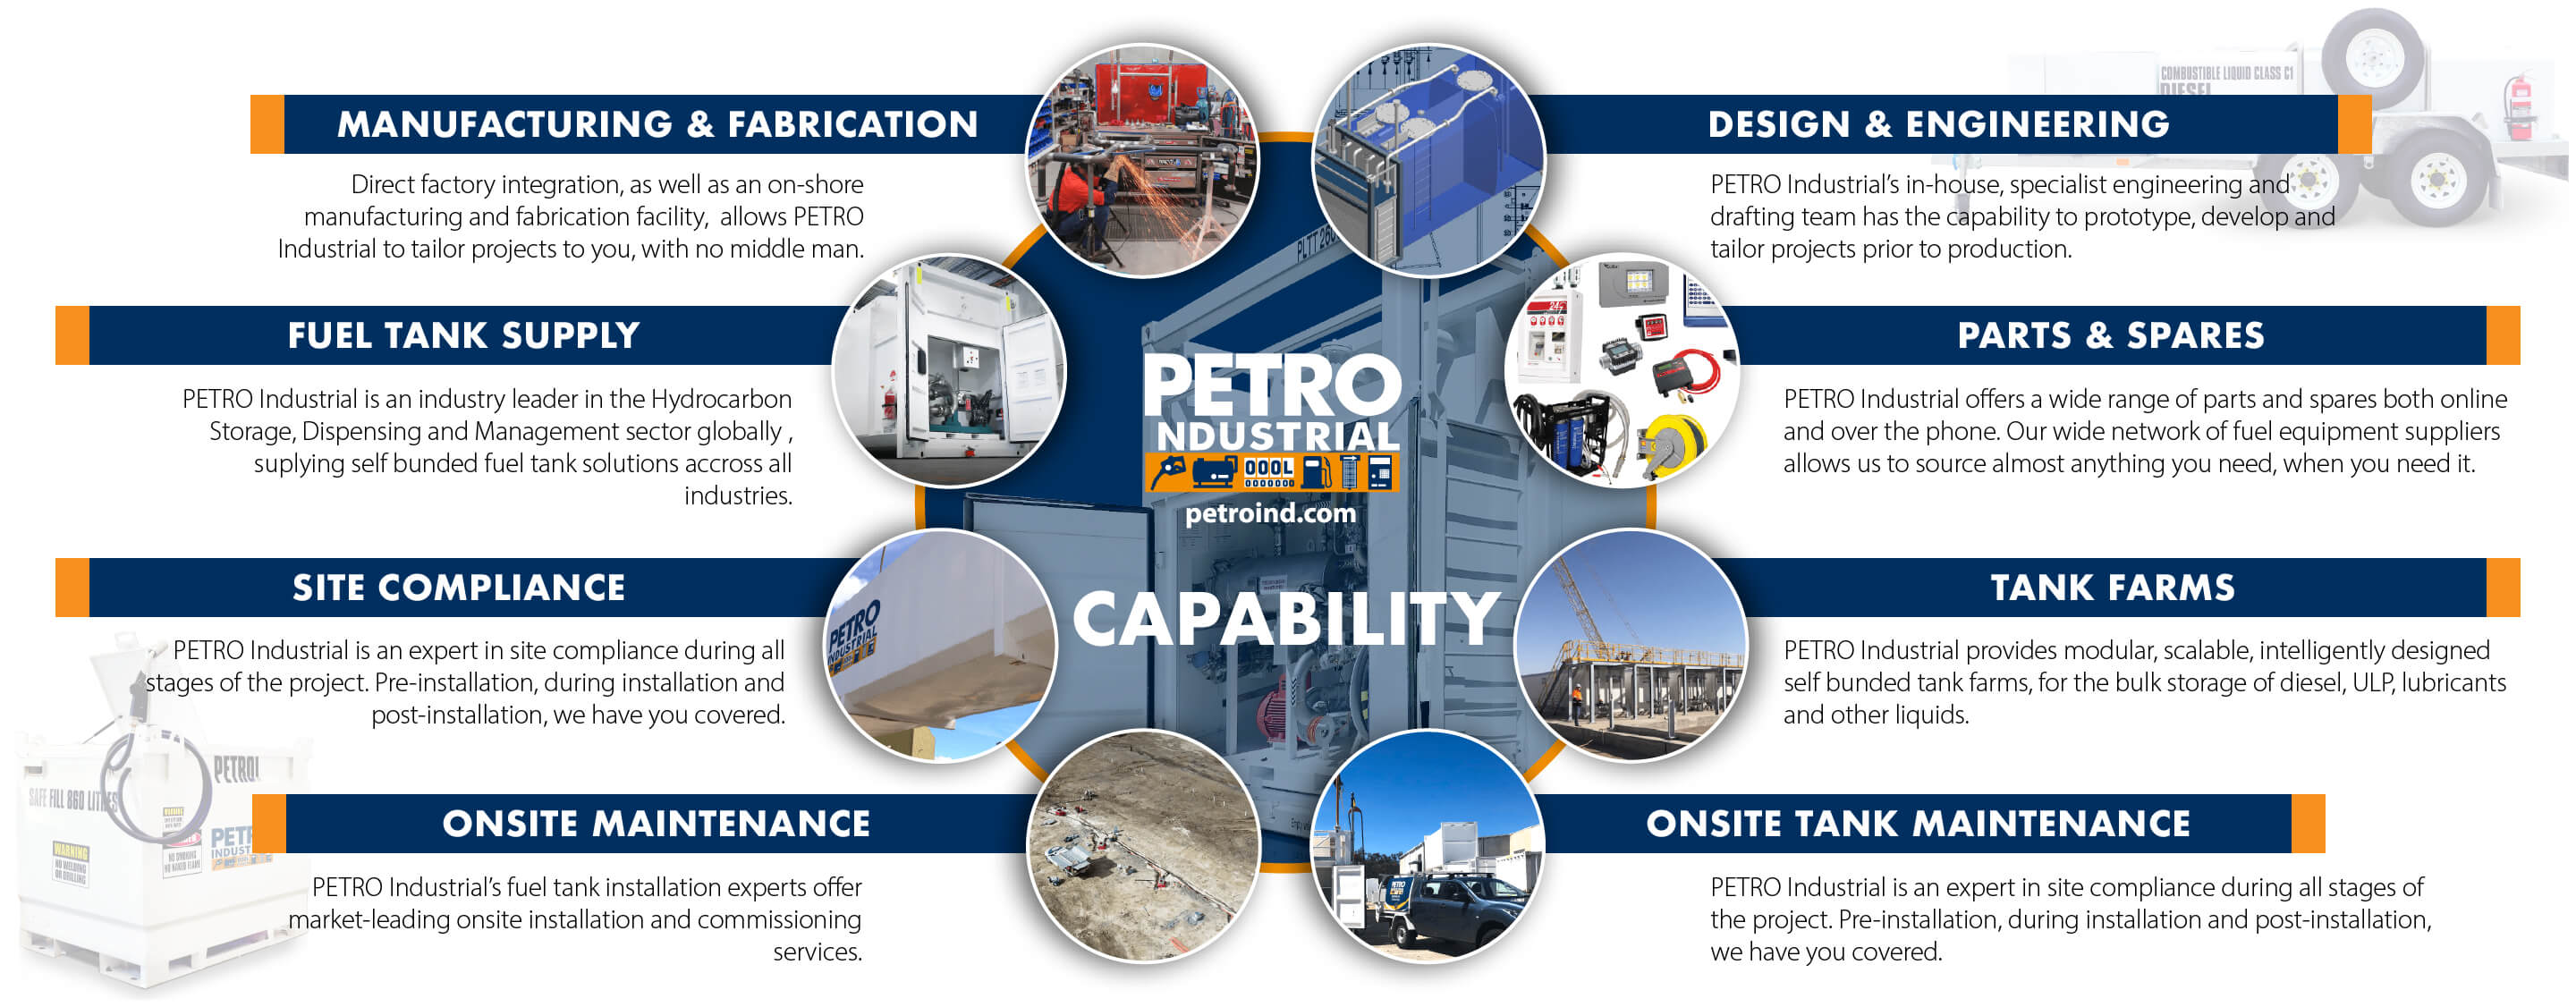 PETRO Industrial is capable of running your project from concept trough to manufacture and installation. We can fabricate and customise around the scope of your project